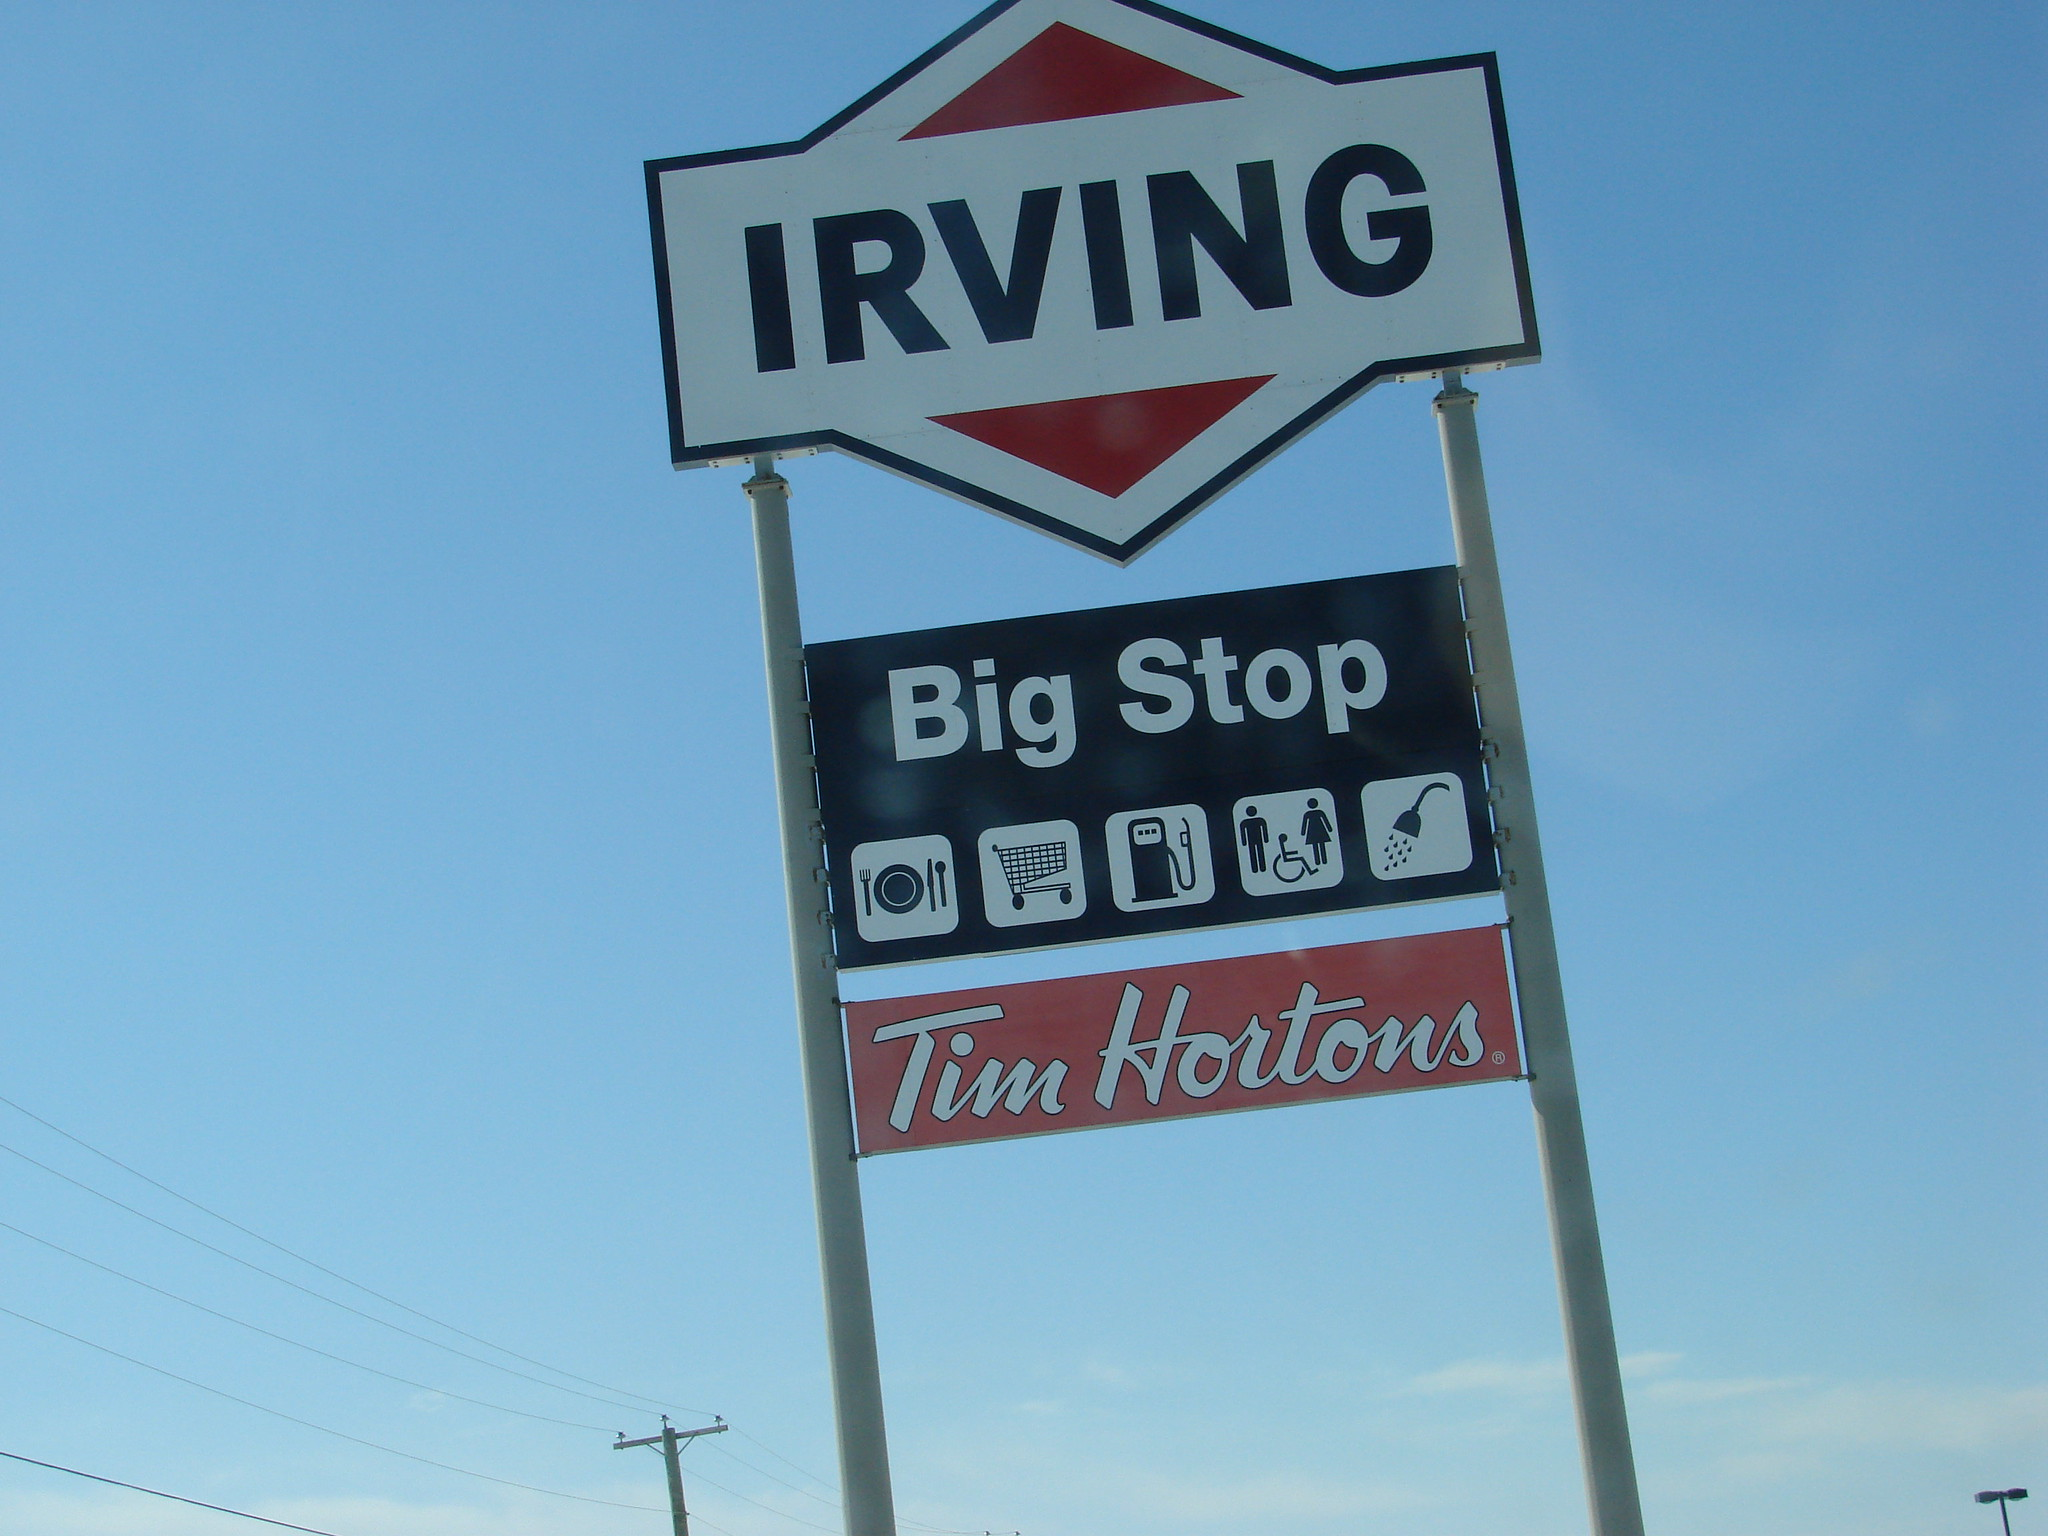 Photo of an Irving Big Stop sign in Salisbury, NB